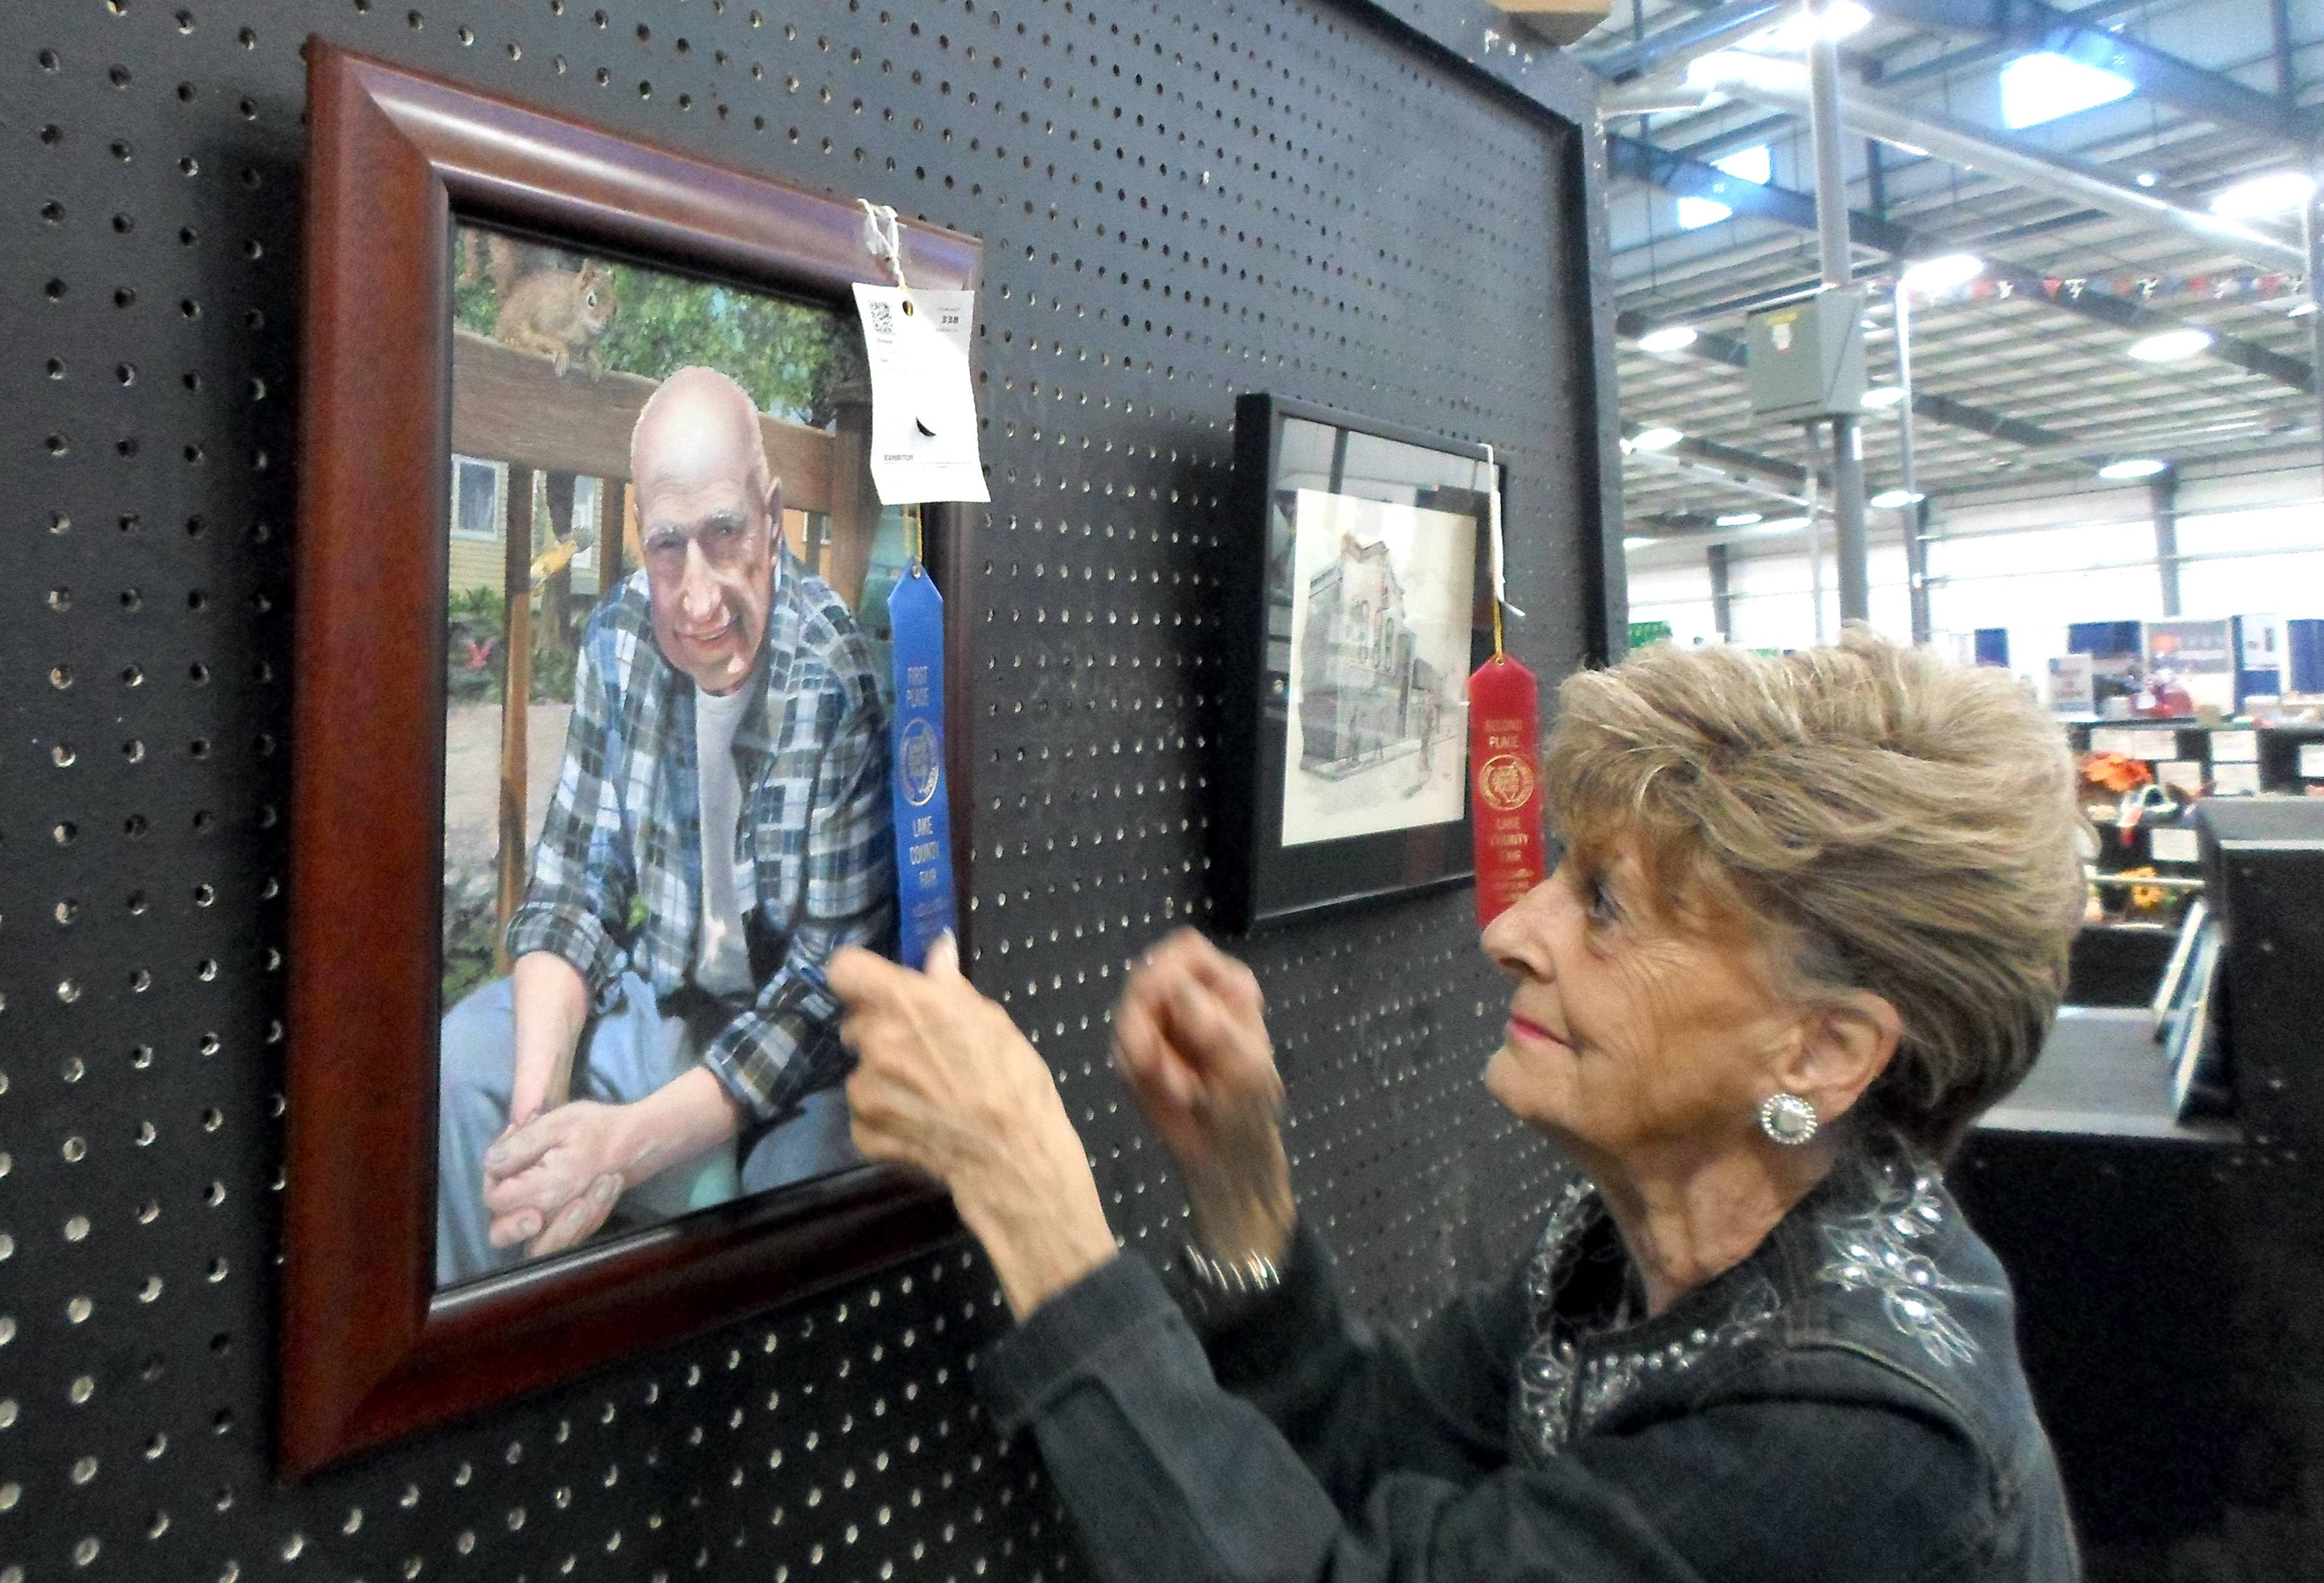 Annie Petersen, in her 62nd year working at the fair, awards the first place and best in show ribbon for paintings on Wednesday. Petersen first fell in love with the fair as a 10-year-old.